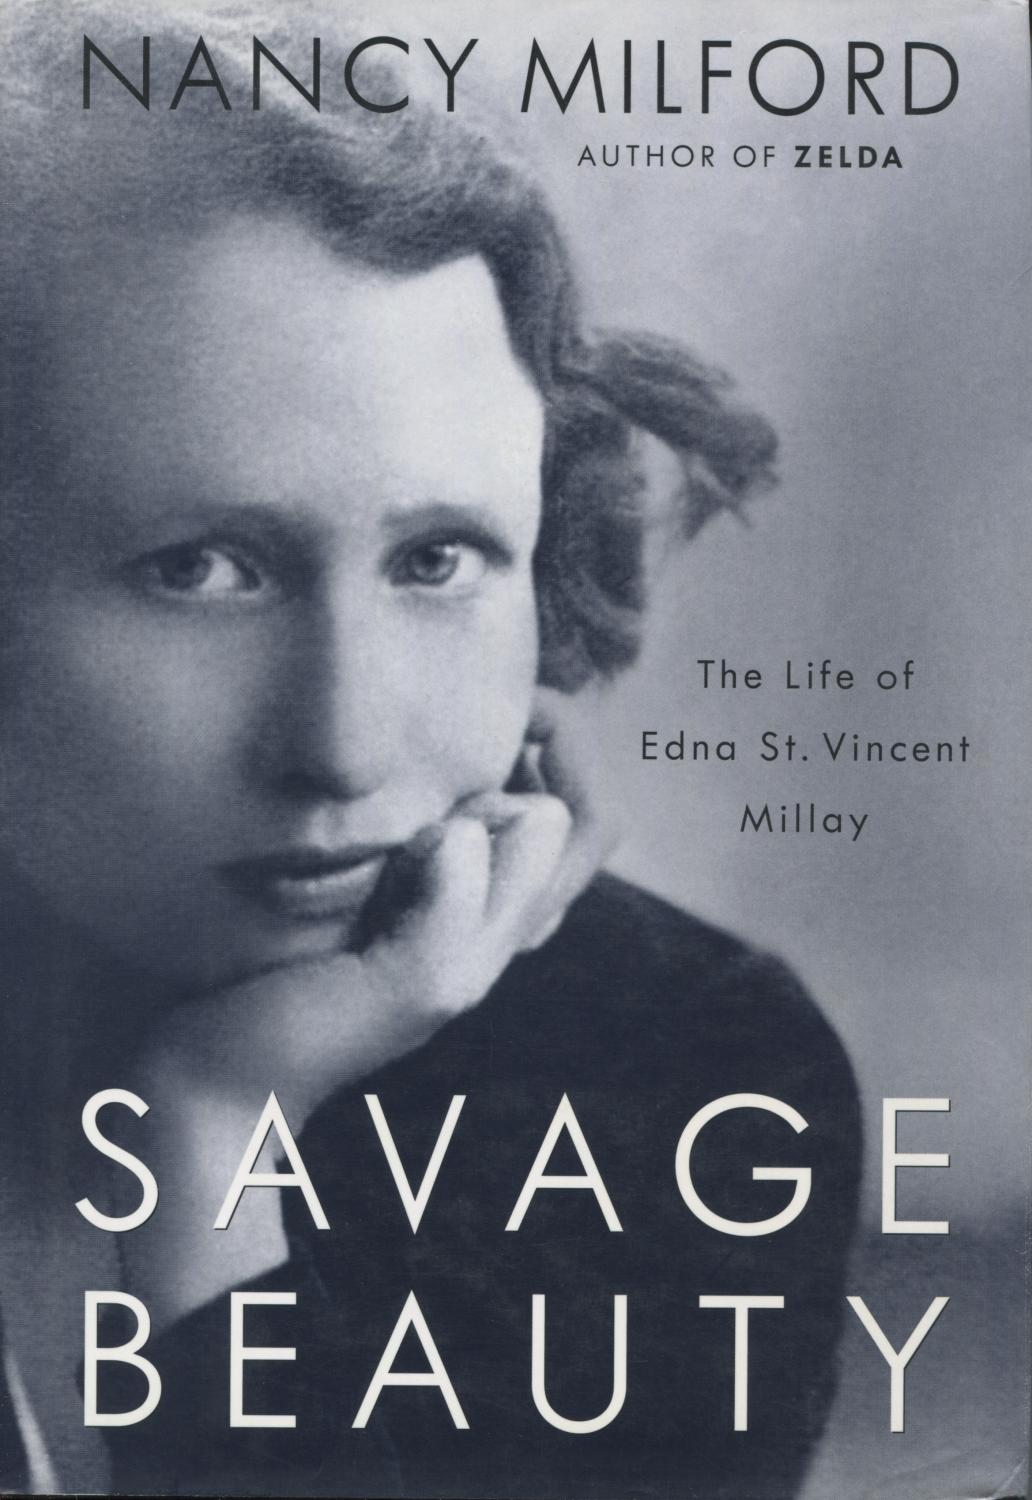 a biography and life work of edna st vincent millay an american poet and author Edna st vincent millay wrote during the modern era the time period was between 1915 and 1945 millay published her first poem in 1917 literary modernism was driven by the start of war.